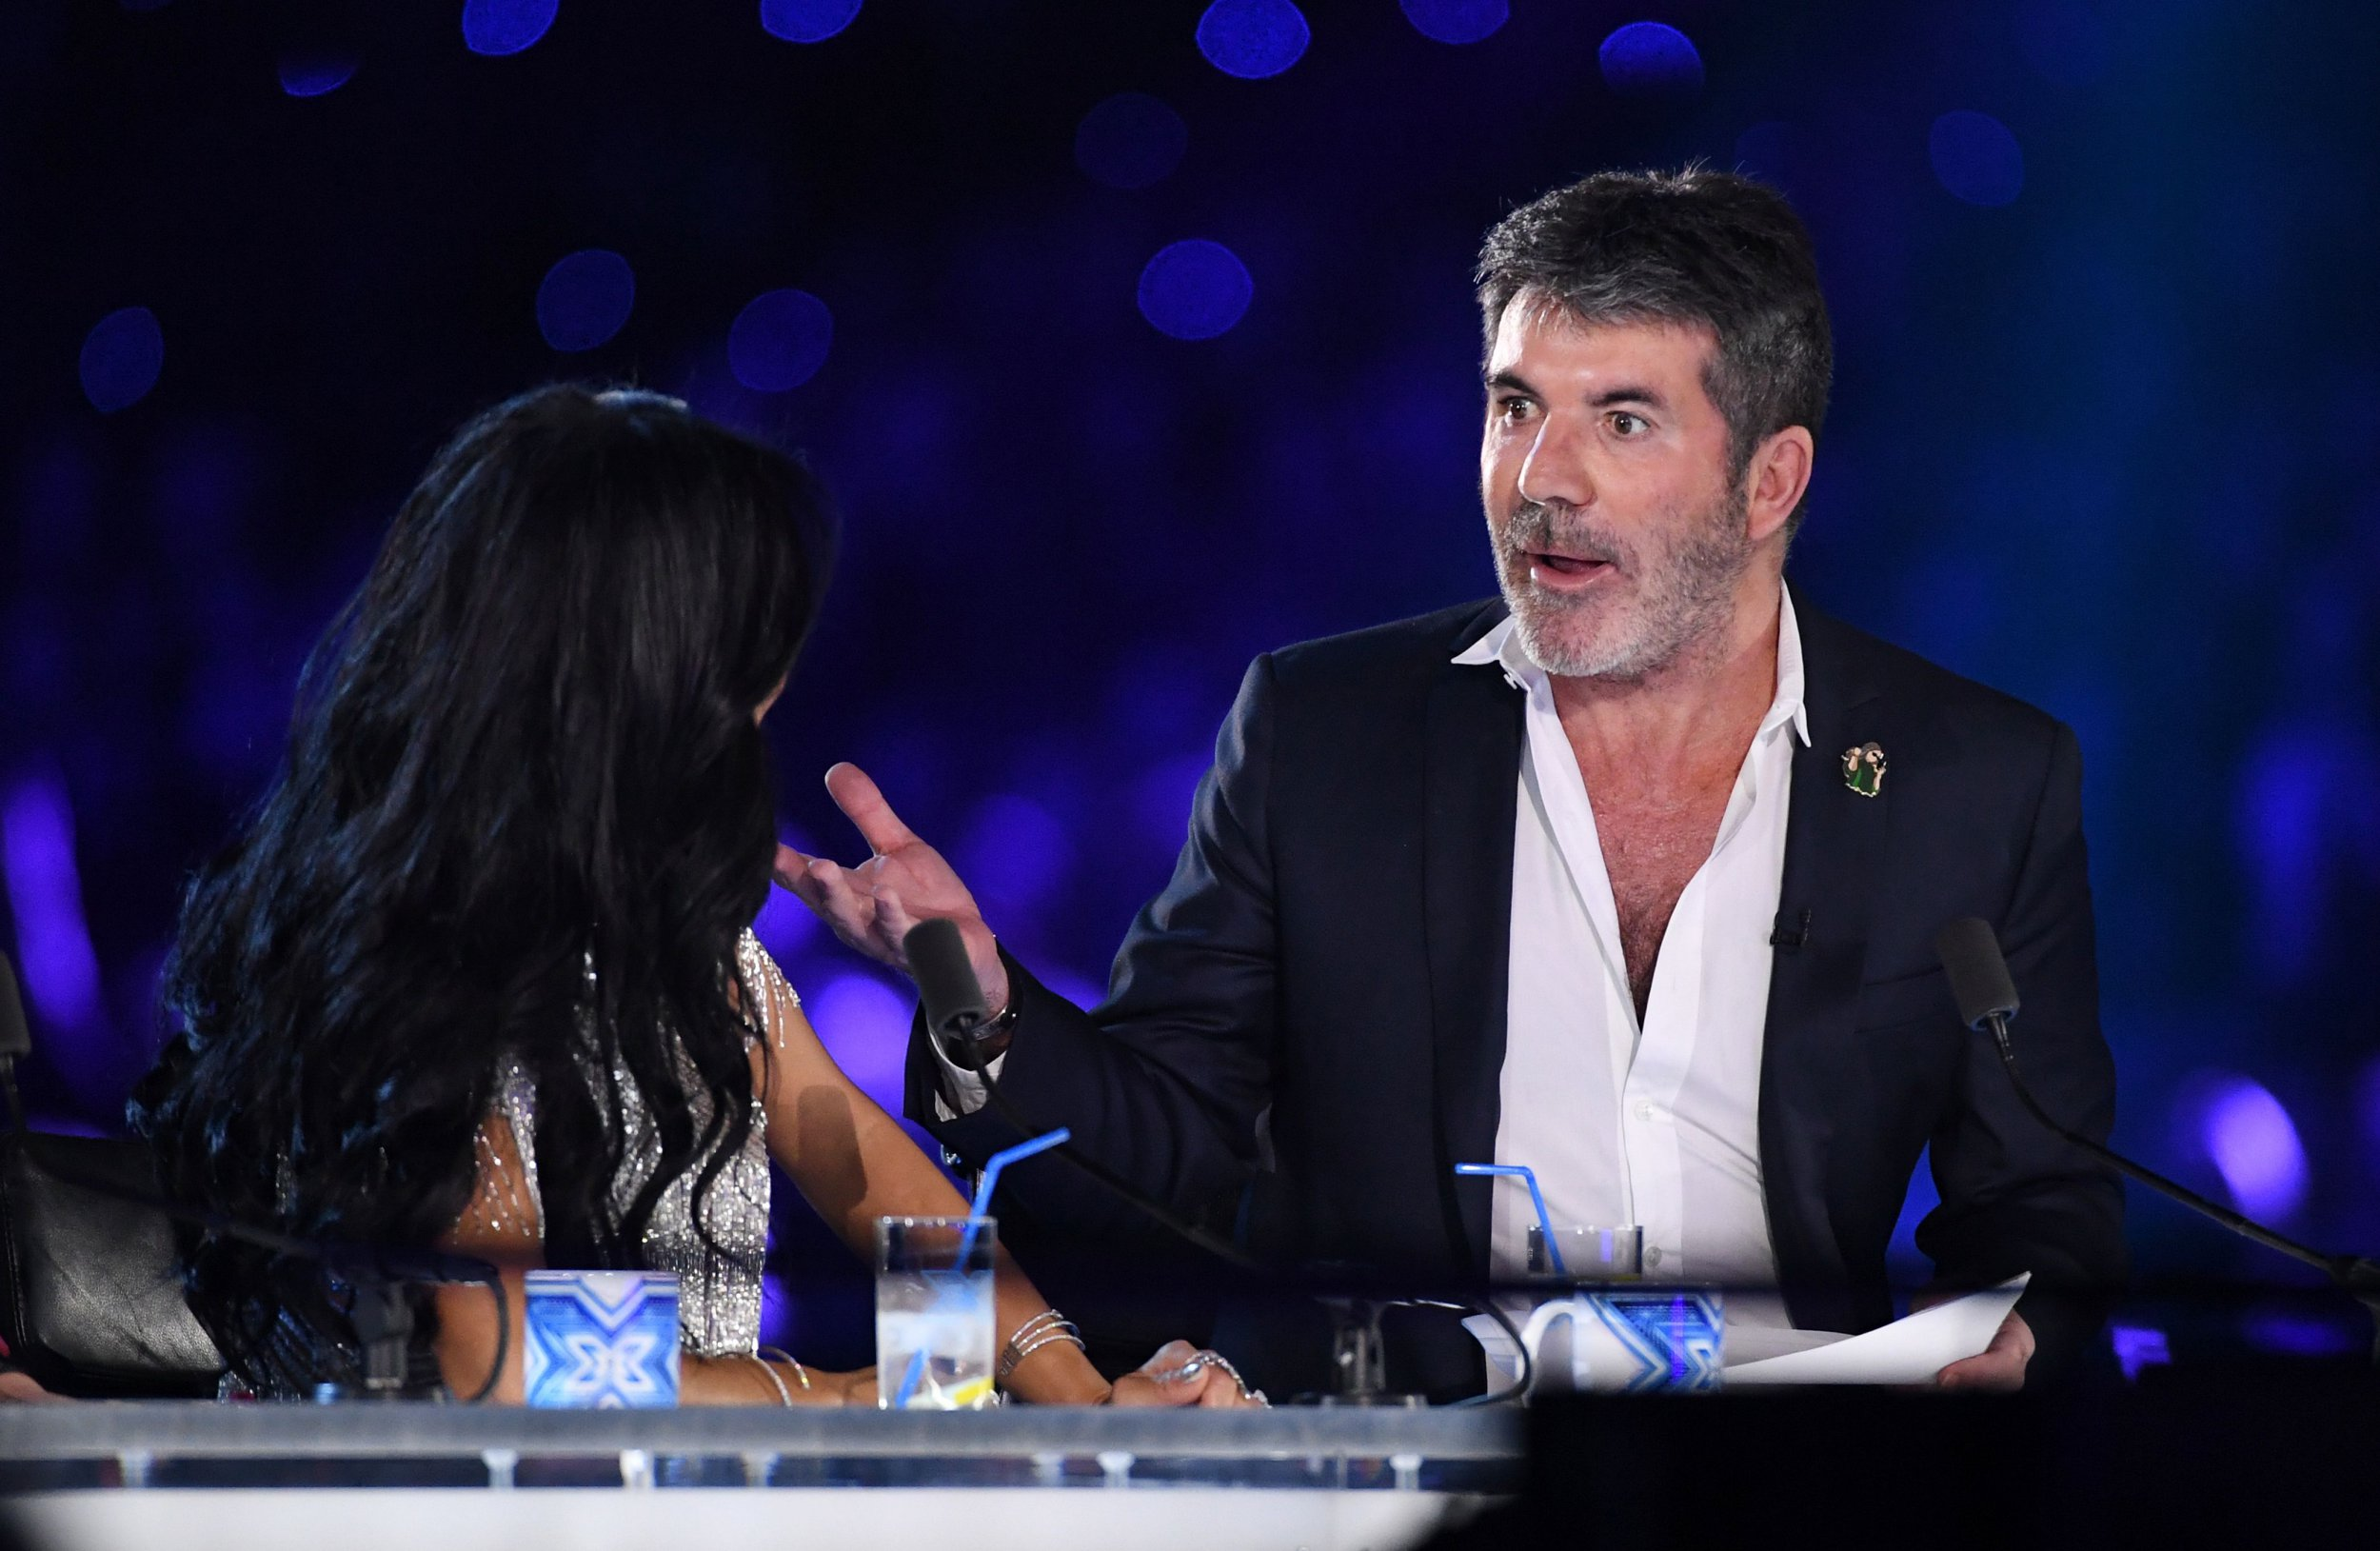 Ofcom to investigate The X Factor over breach of product placement rules